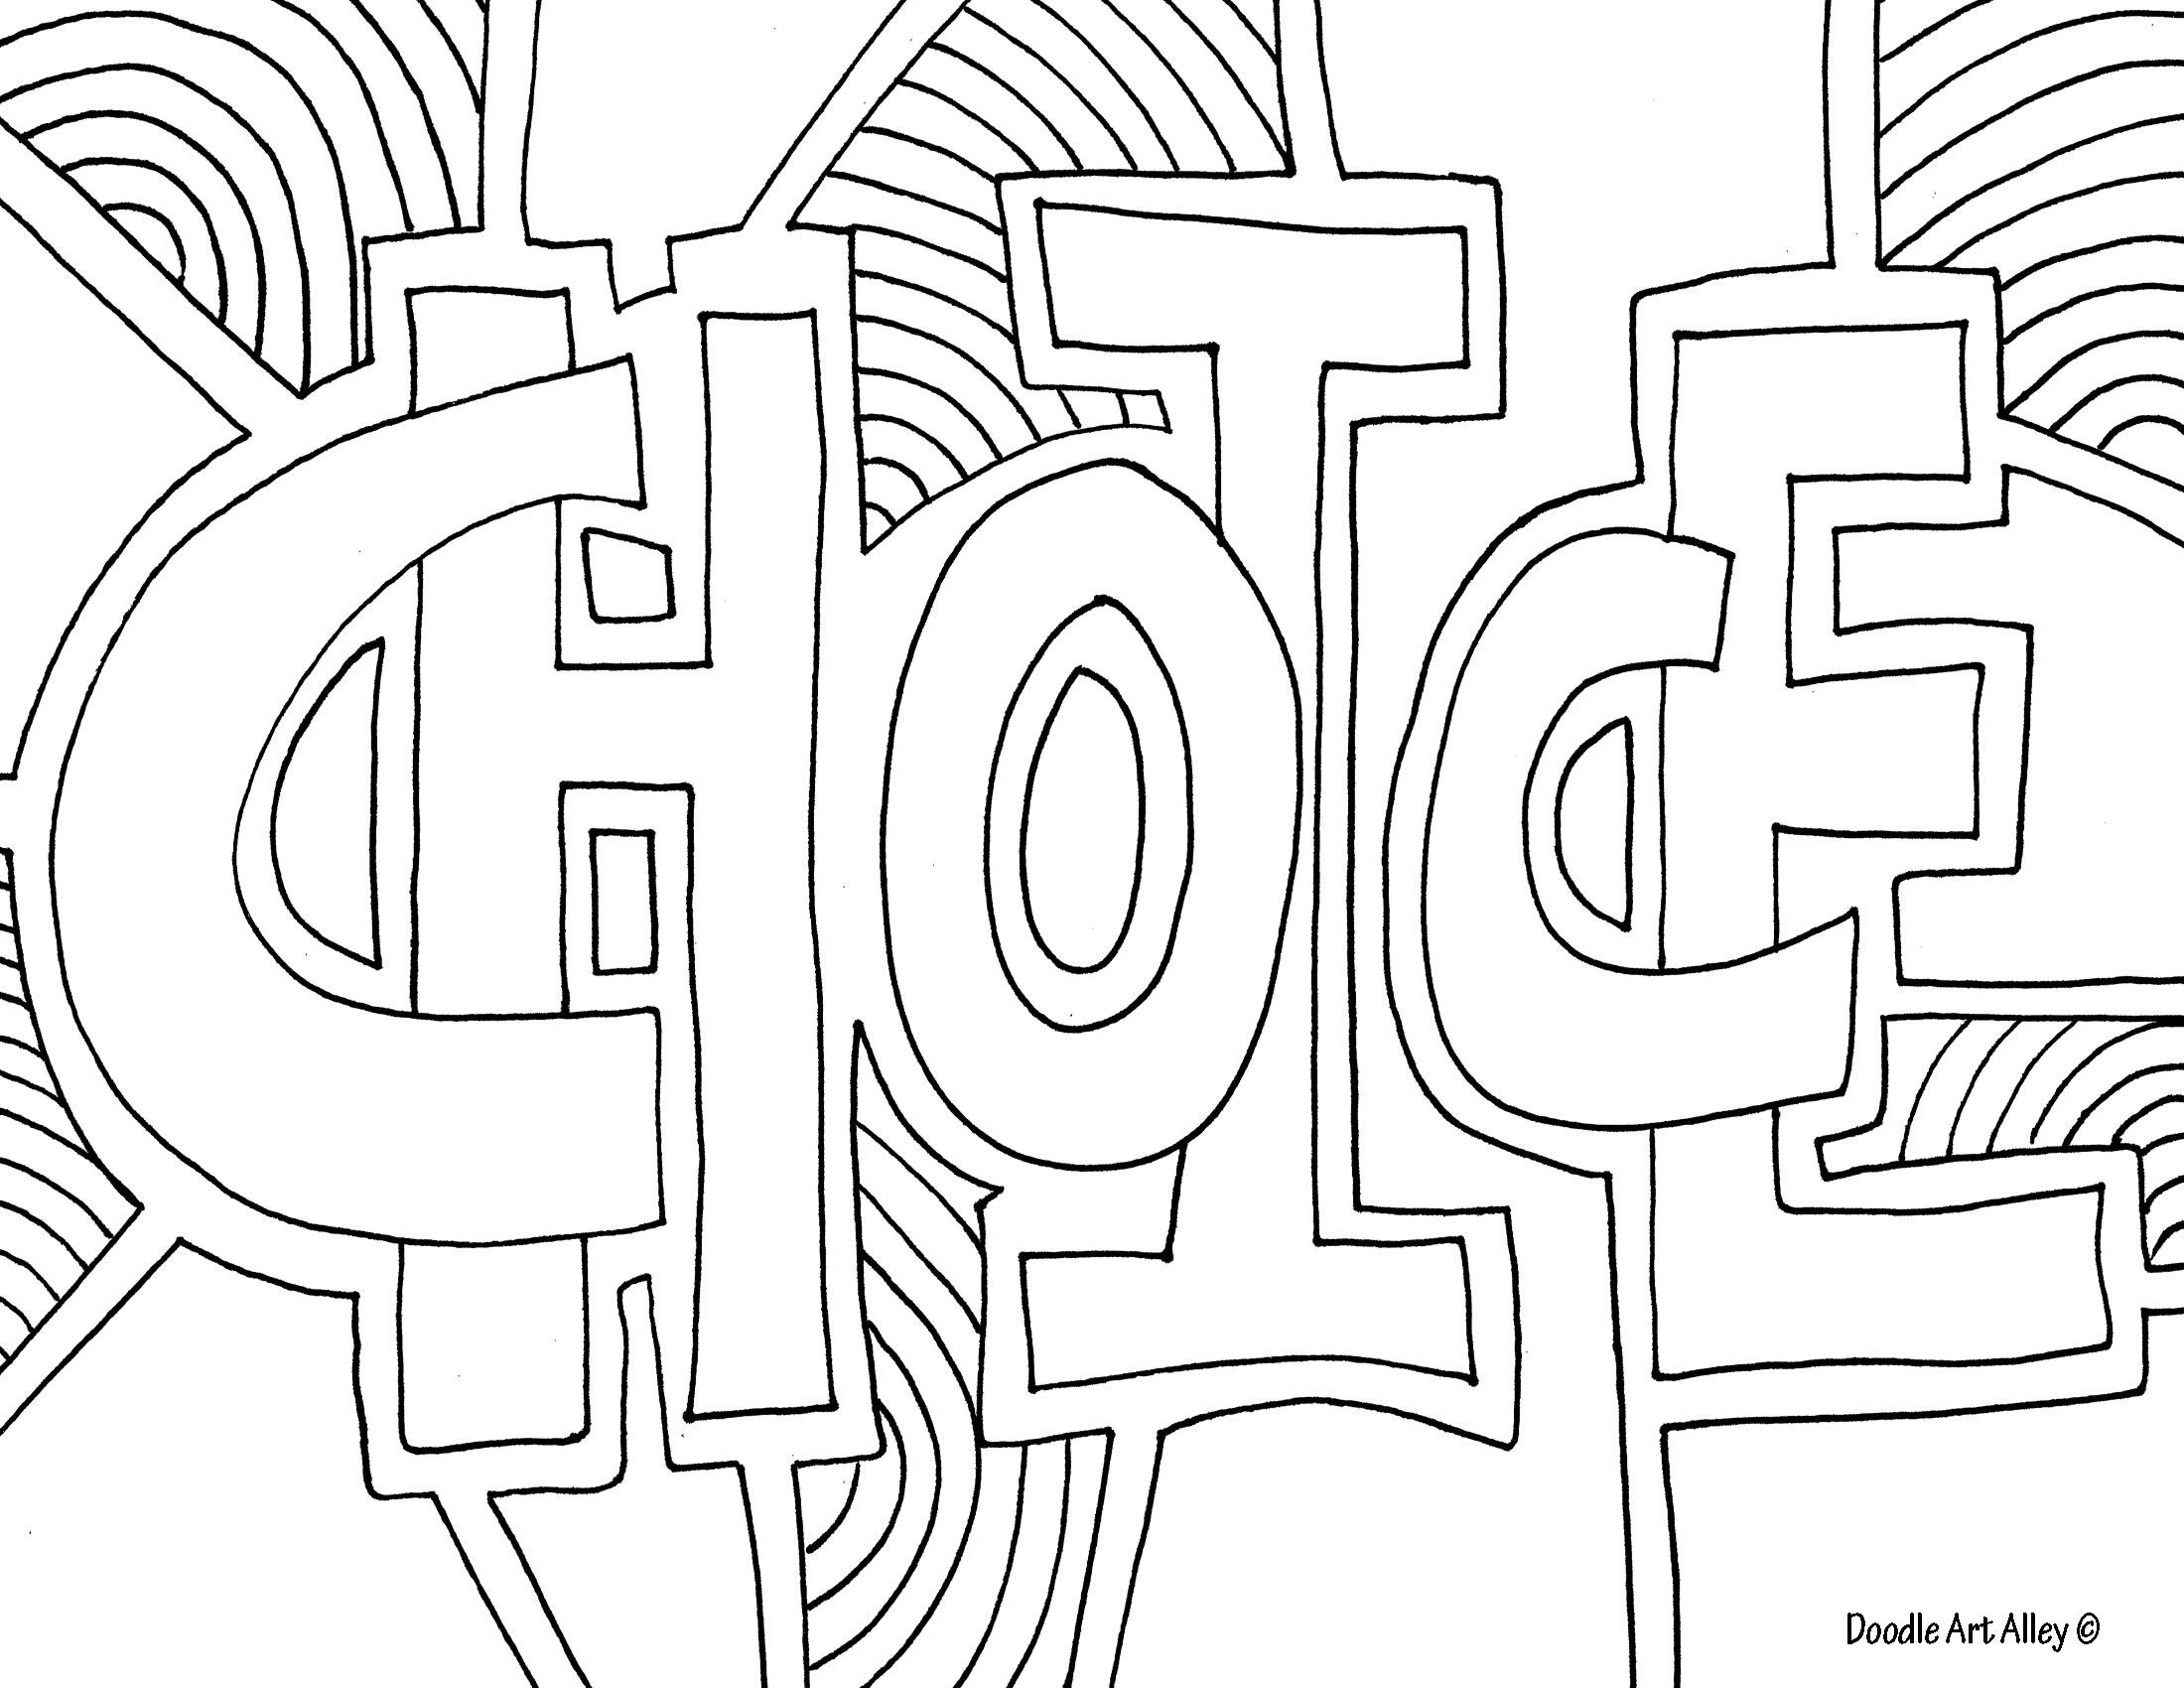 Choice Coloring Page